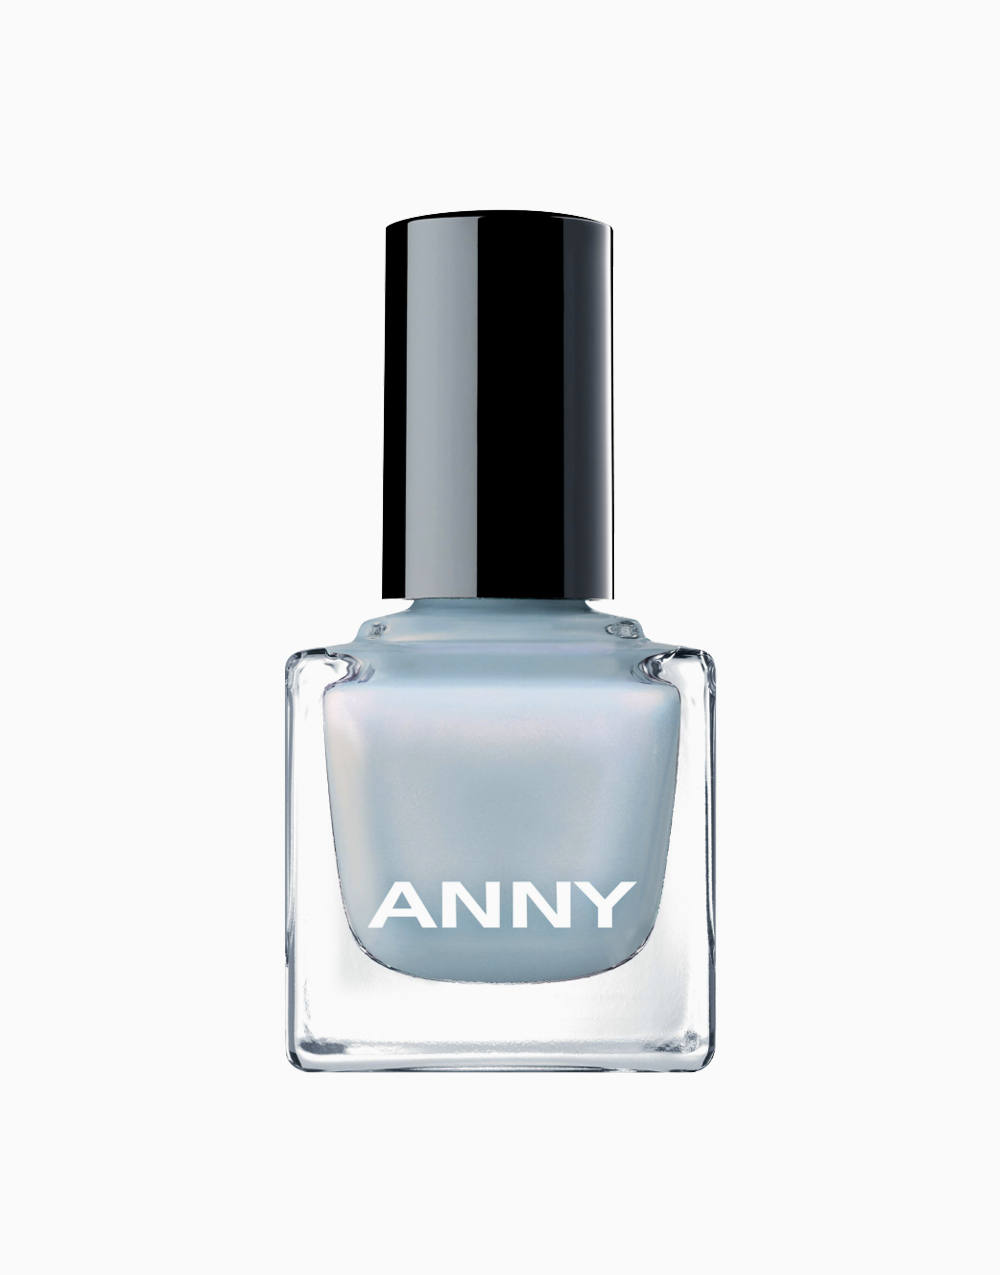 Nail Polish by Anny | MAD MERMAID